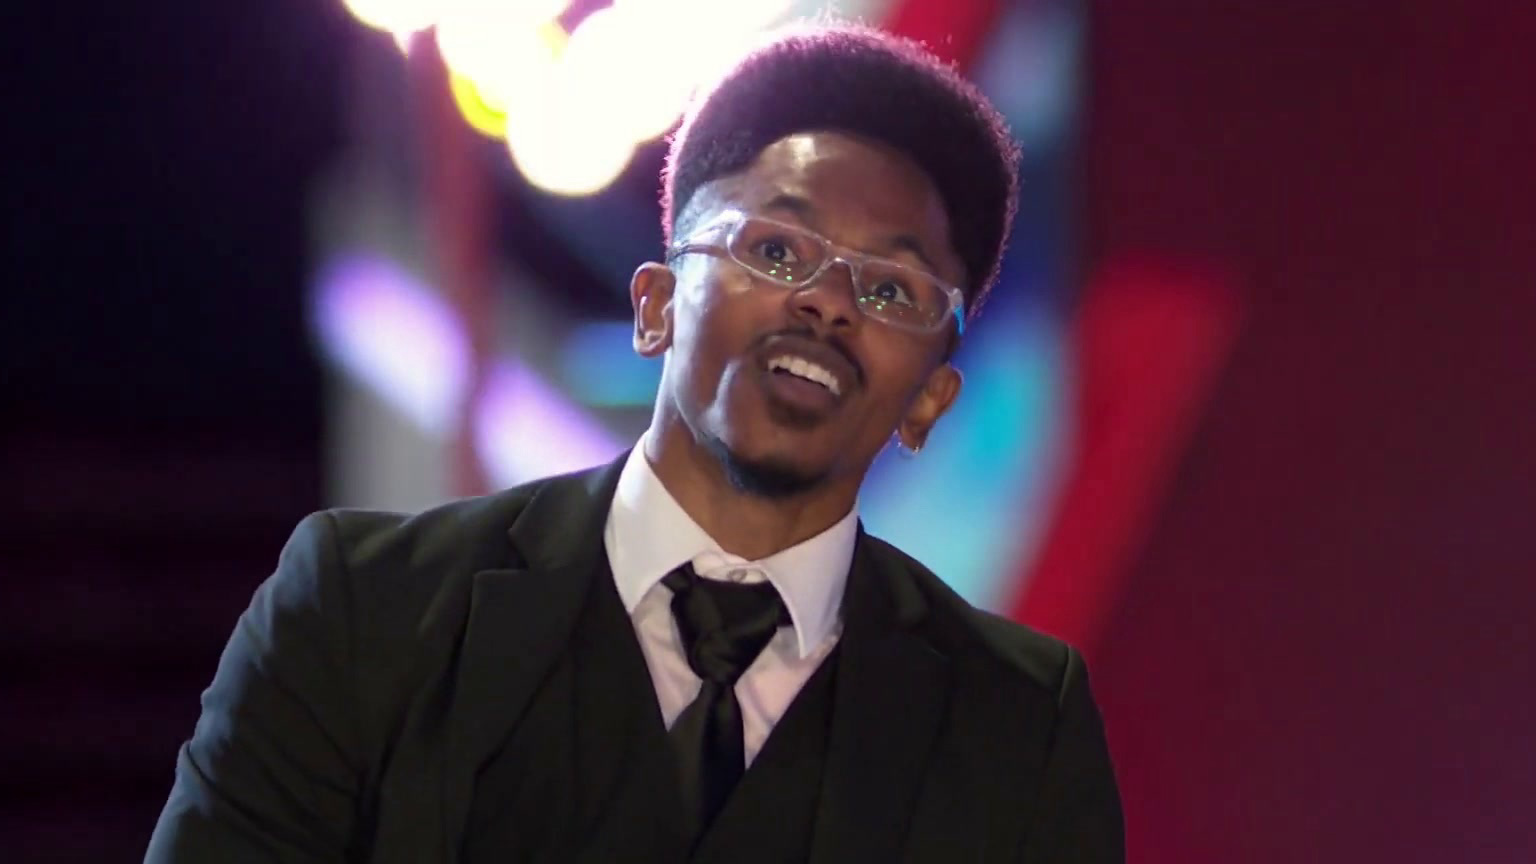 American Ninja Warrior: Donovan Metoyer Gives A Master Class In Style And Athleticism